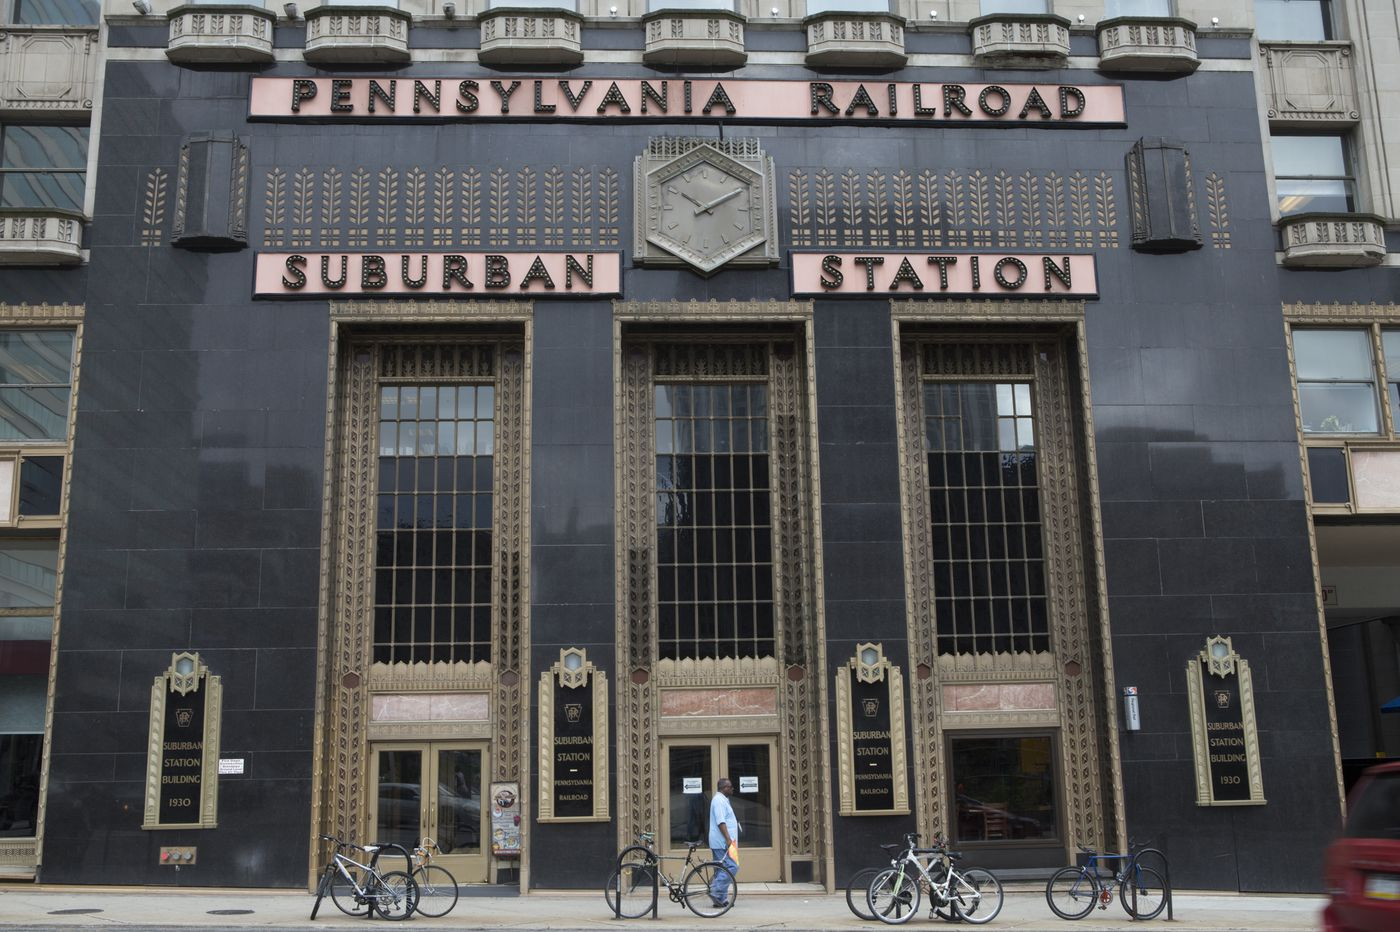 Why Philadelphia's Suburban Station is in the heart of the city